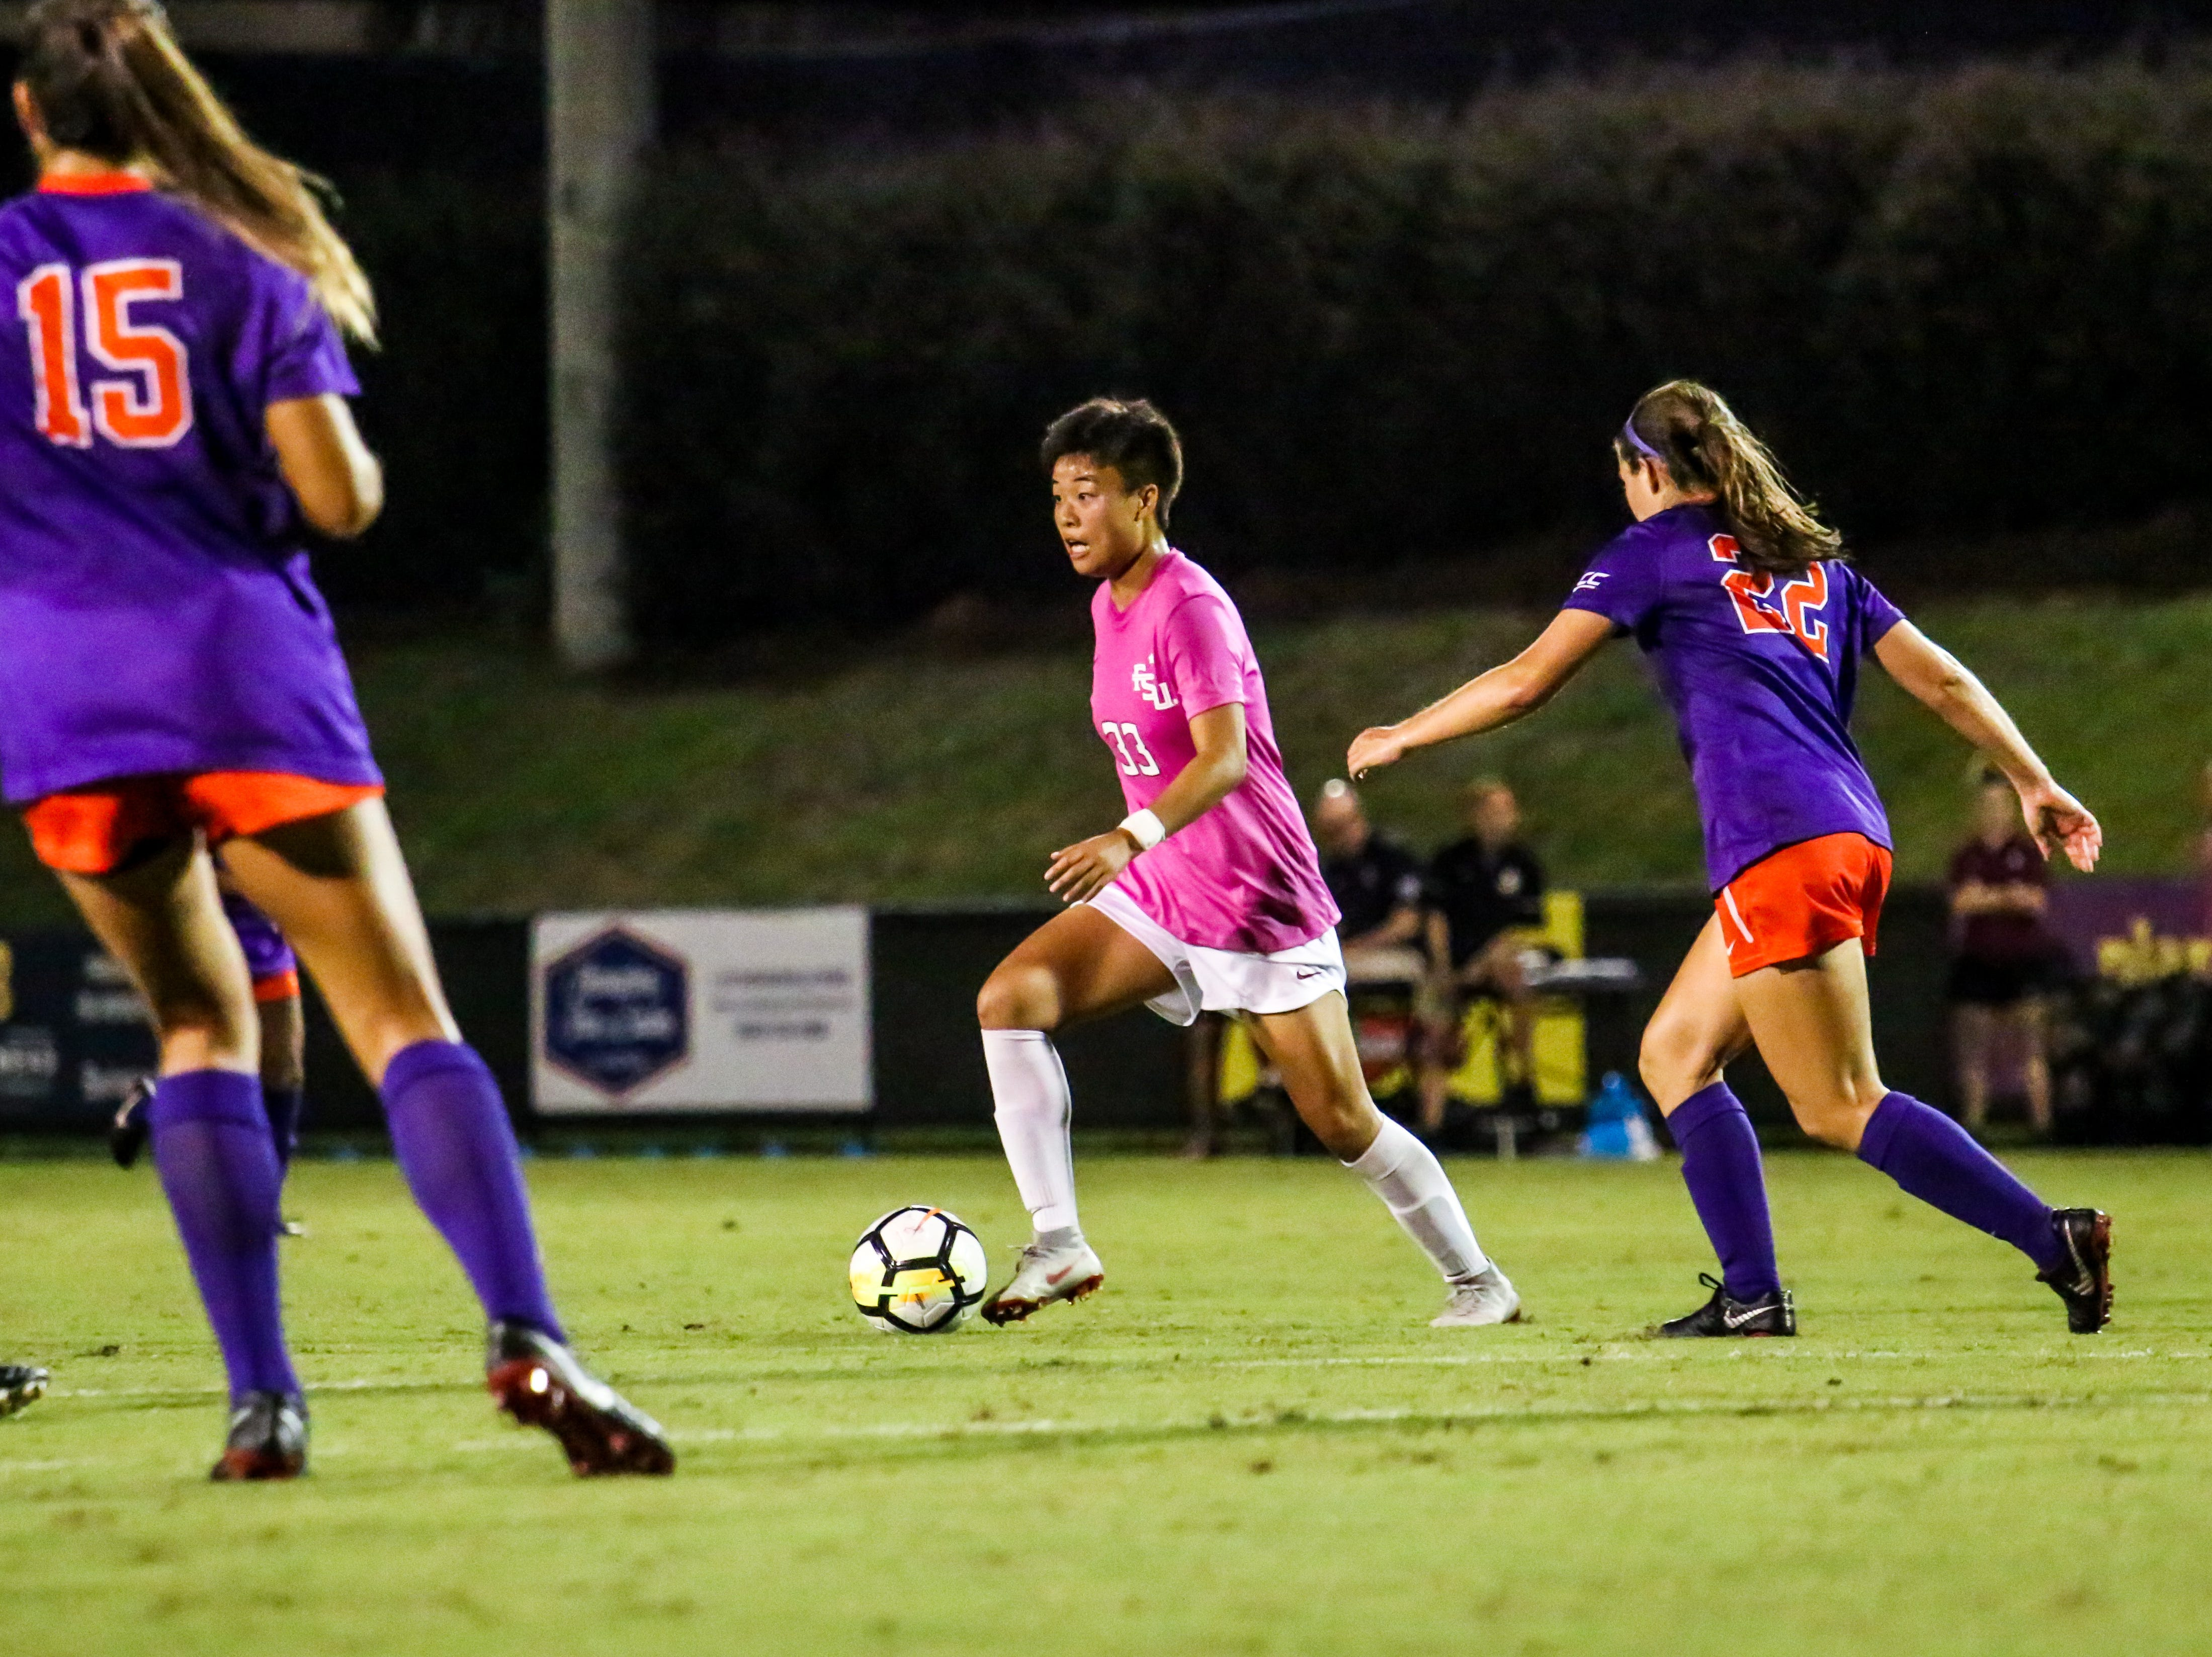 Yujie Zhao (33) was a workhorse in the midfield, providing many passes and through balls to teammates against Clemson on Thursday, October 4th at the Seminole Soccer Complex.